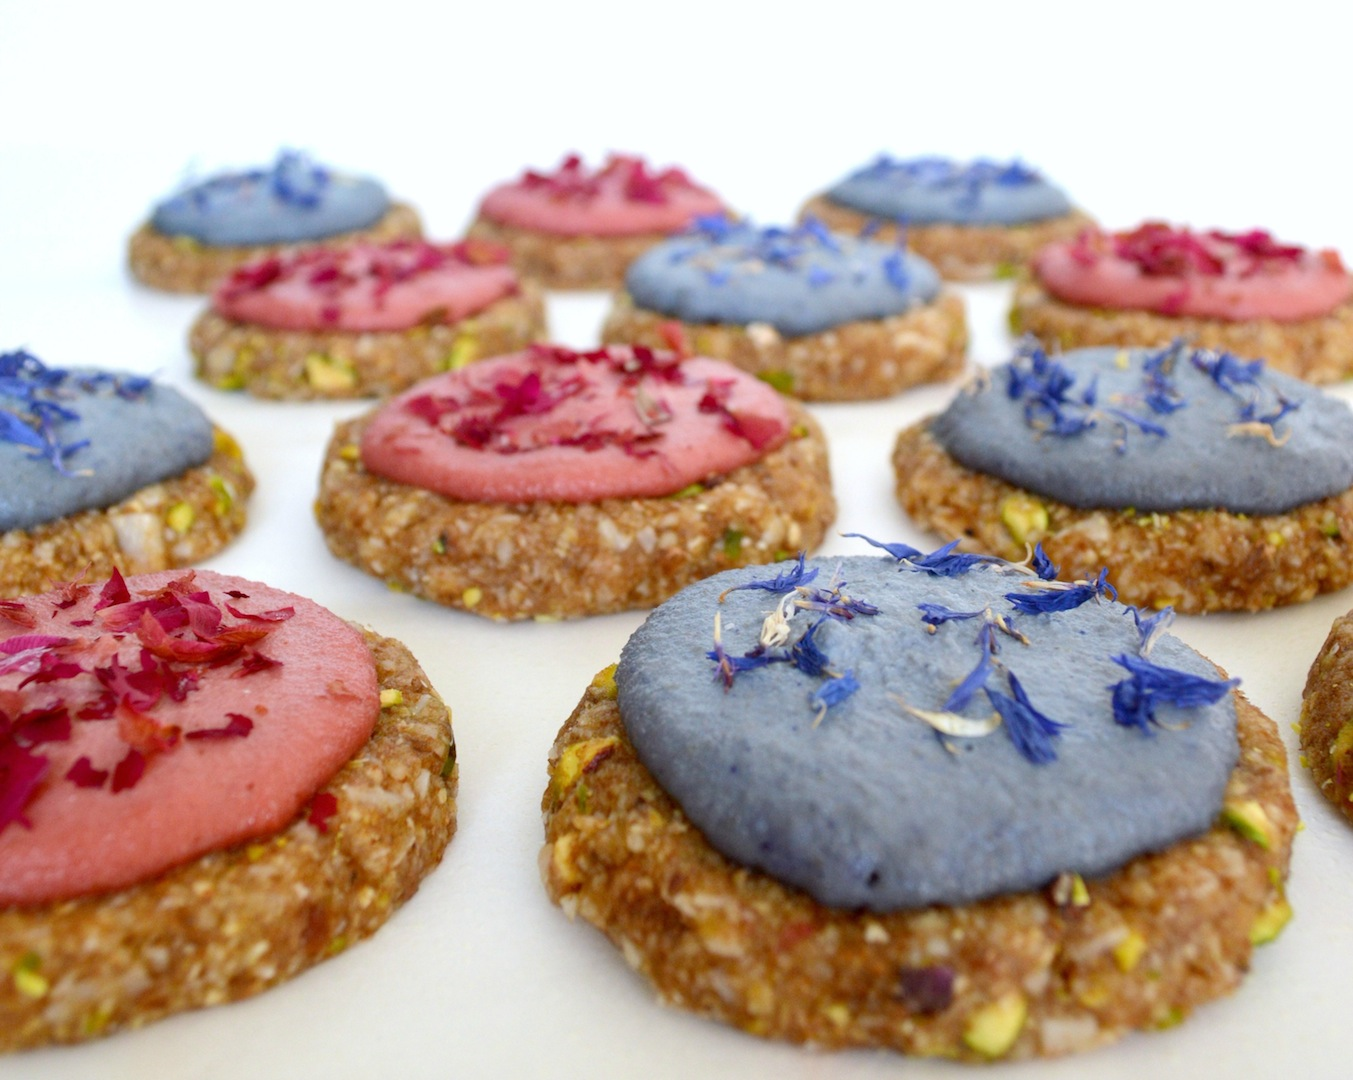 Pistachio Coconut Cookies with Rose and Lavender Cashew Cream (Raw, Vegan)  by Plantbased Baker